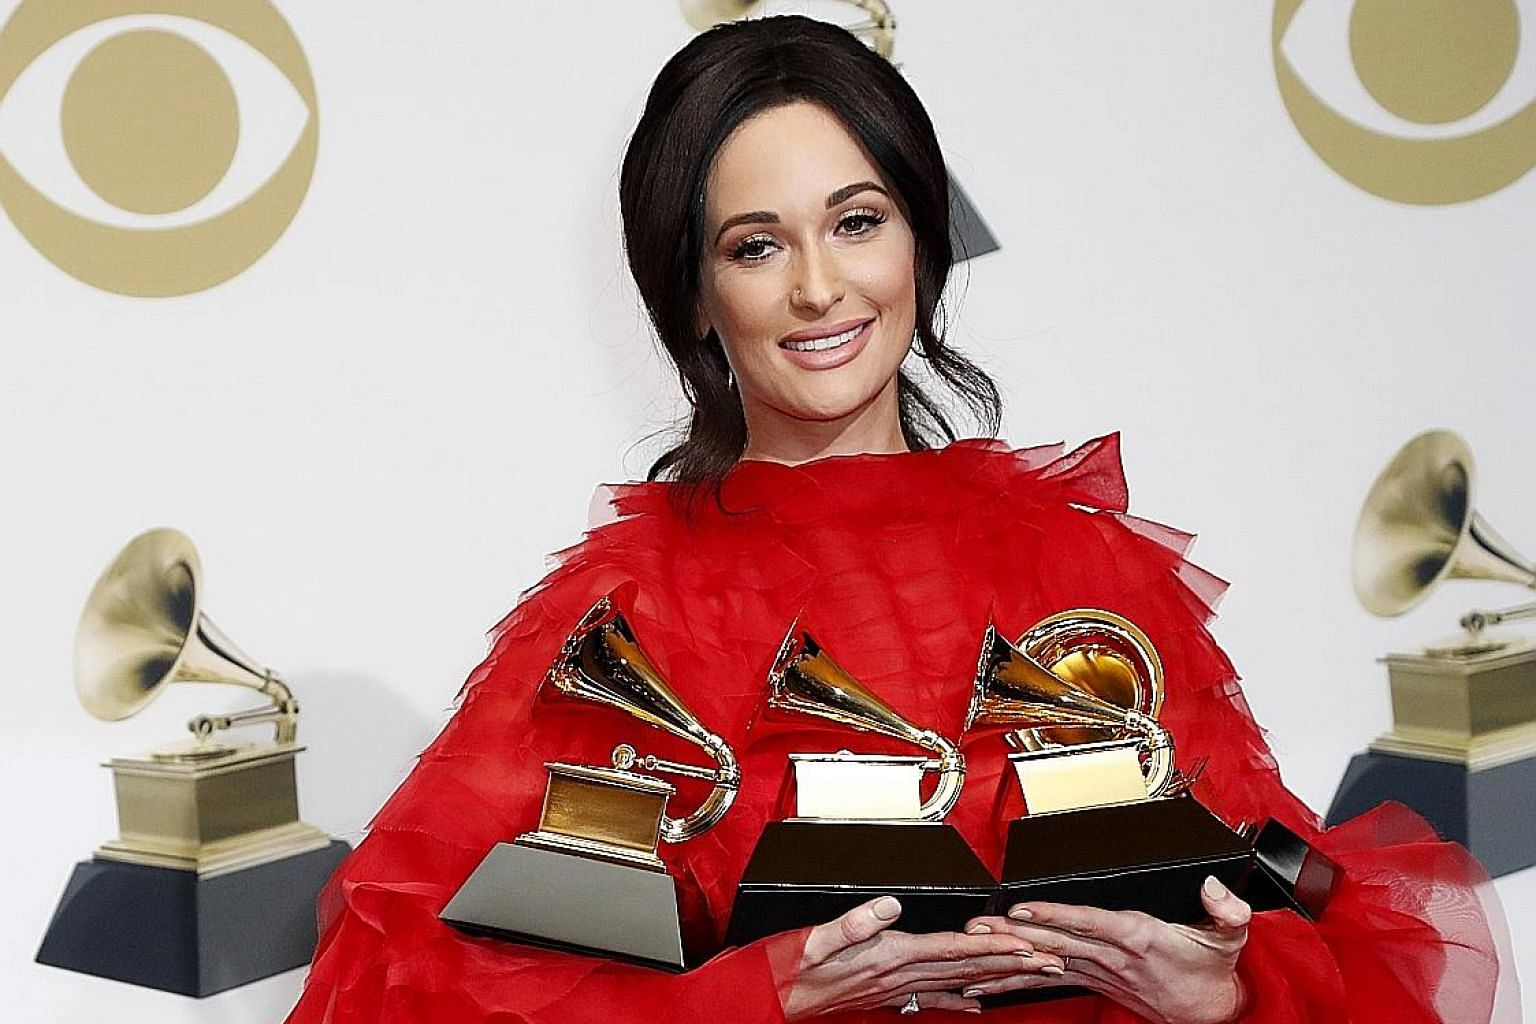 Kacey Musgraves' (above) Grammy wins included Album of the Year.